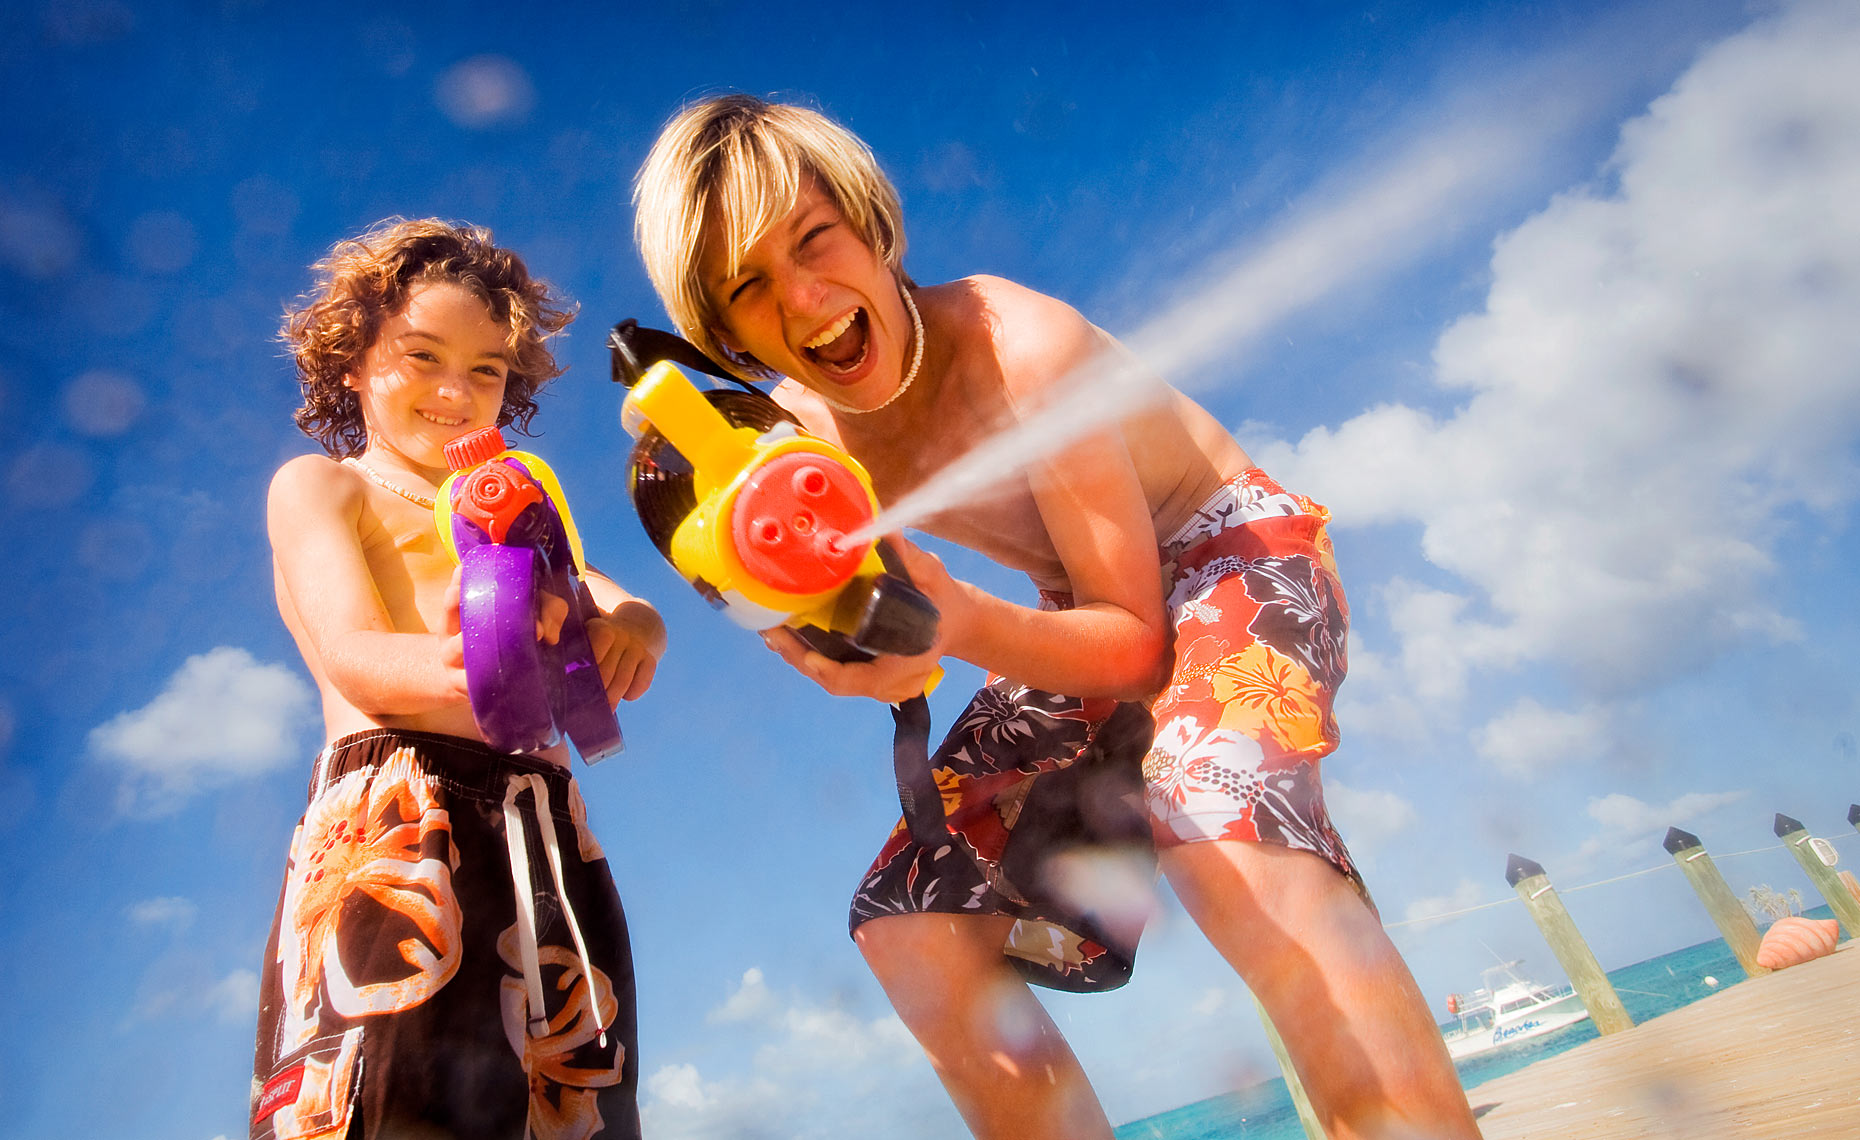 Boys with water guns - Beaches Turks and Caicos.